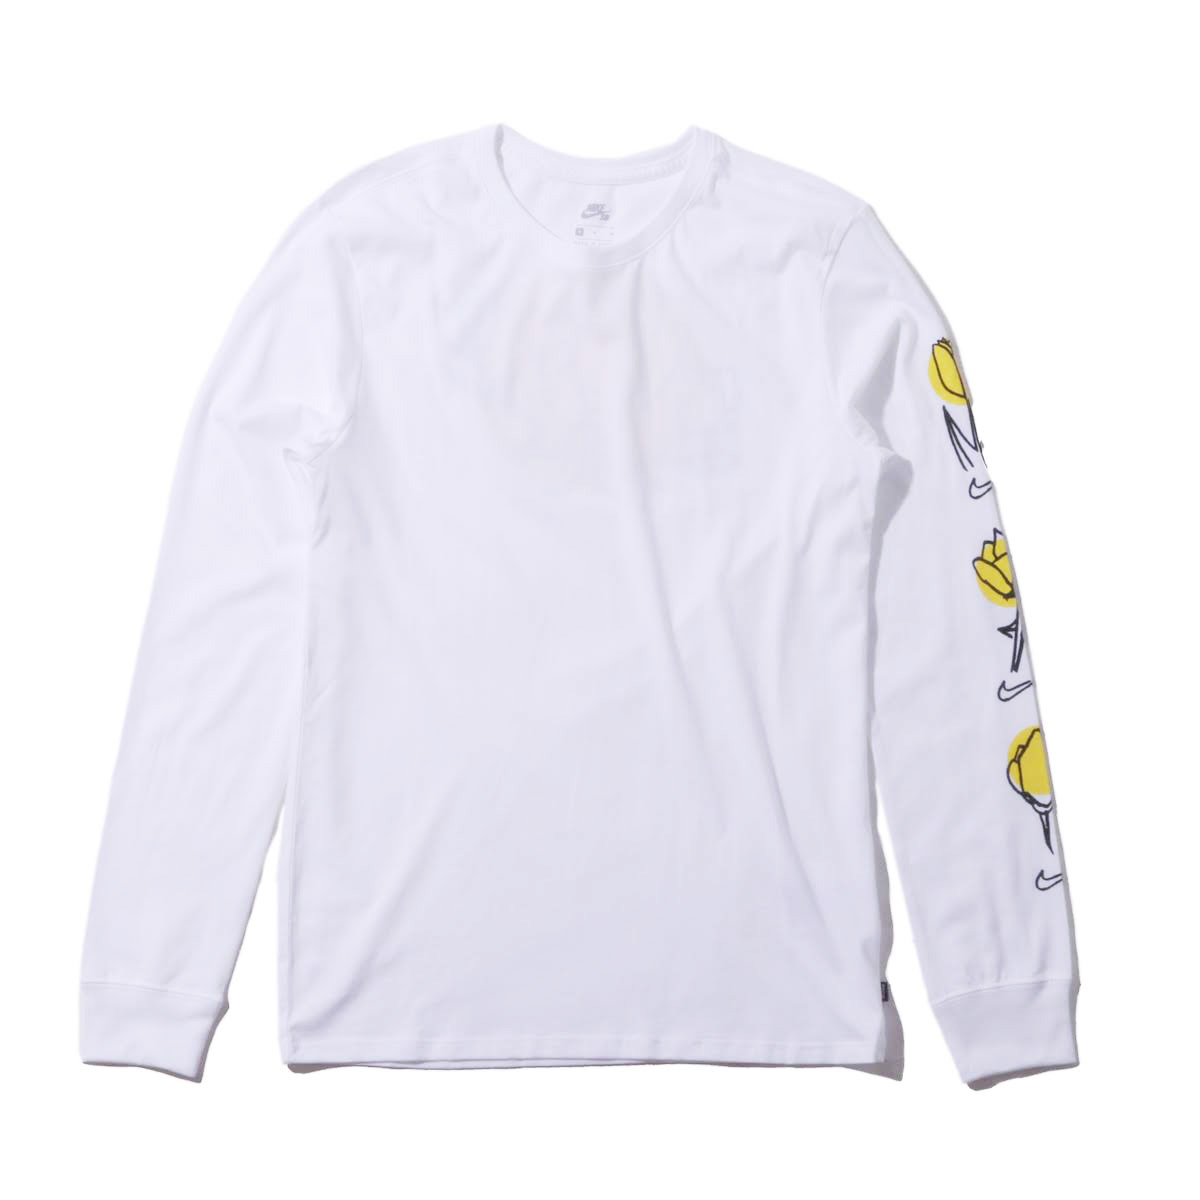 60d4ebc0 The Nike SB men Longus Reeve graphic T-shirt keeps a state comfortable  lightly during a play for a feeling of casual fitting of the tender jersey  material.